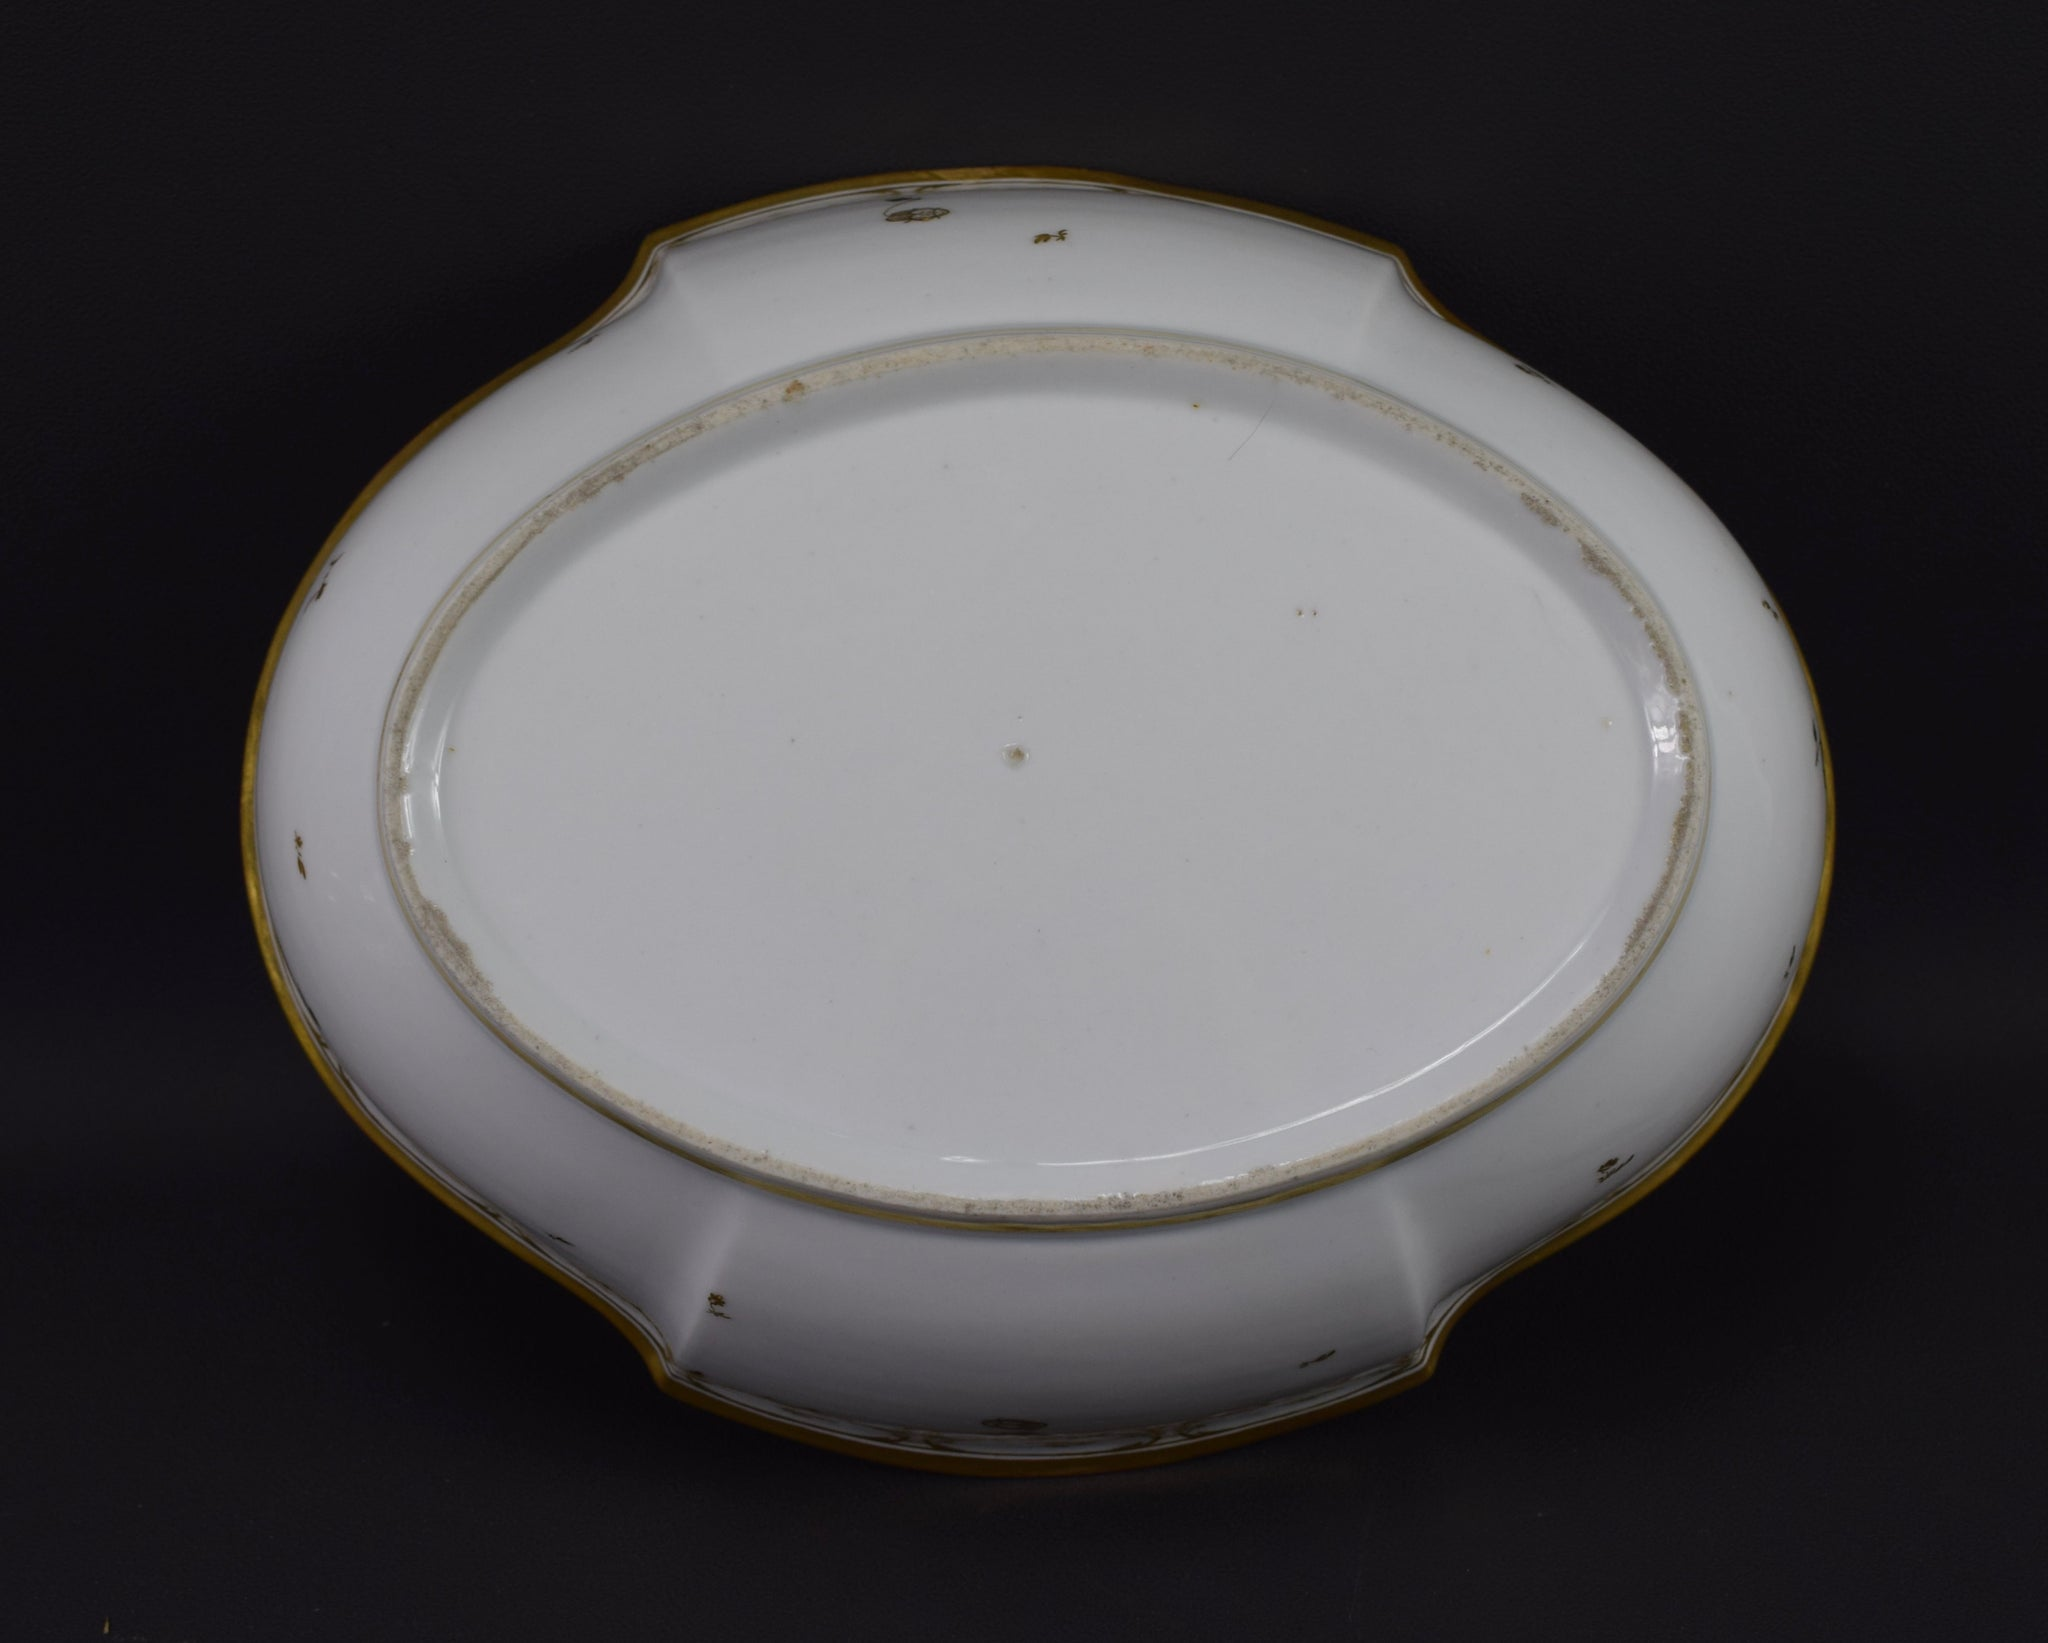 Porcelain of Paris Dish - Charmantiques